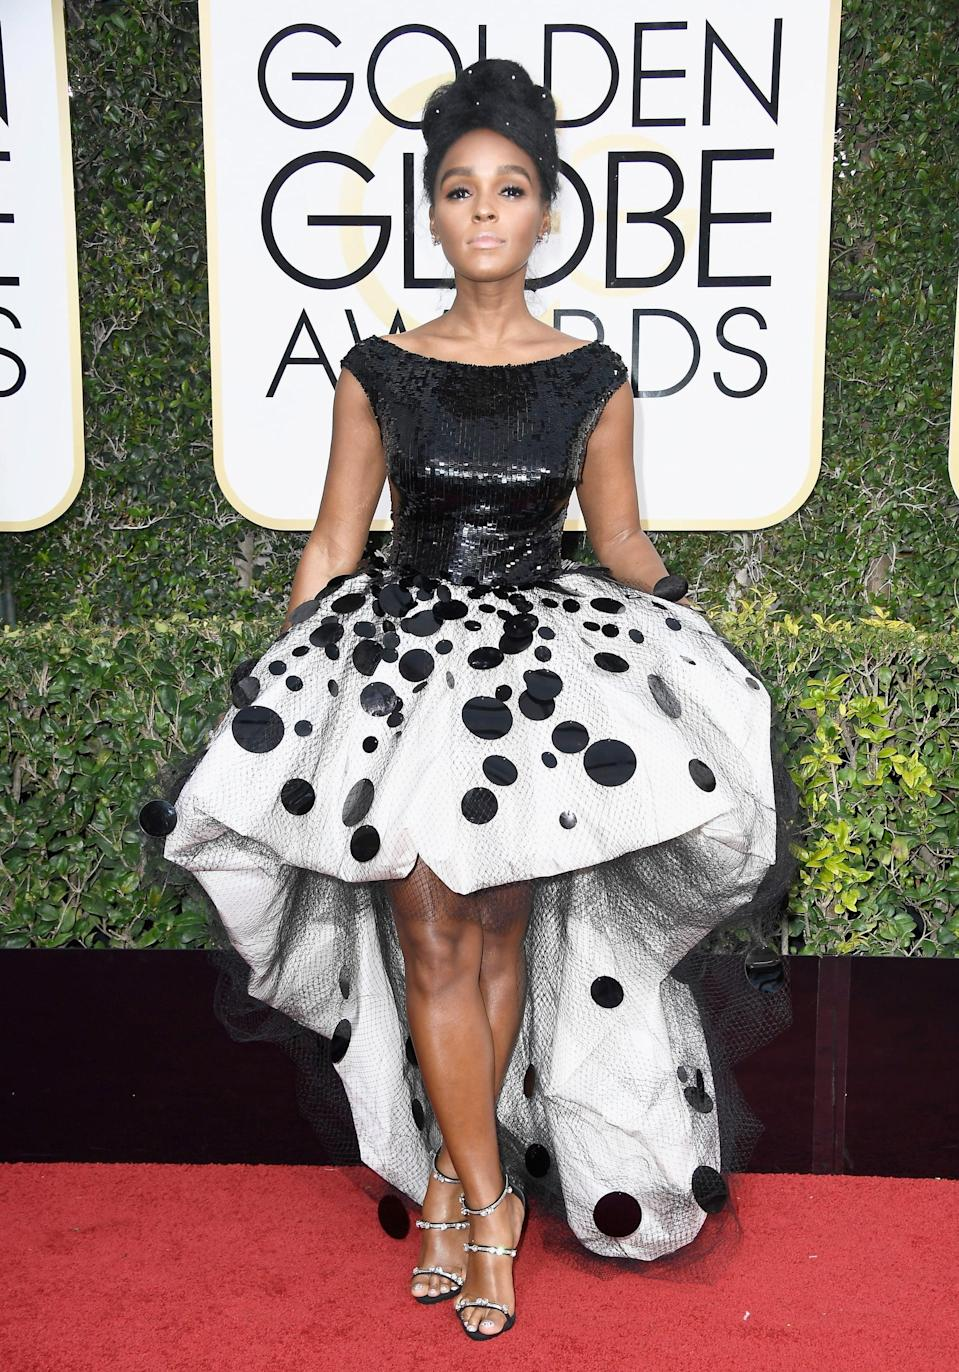 <p>Janelle wore an Armani asymmetrical dress, Giuseppe Zanotti heels, and Forevermark jewels to the 2017 Golden Globe Awards.</p>